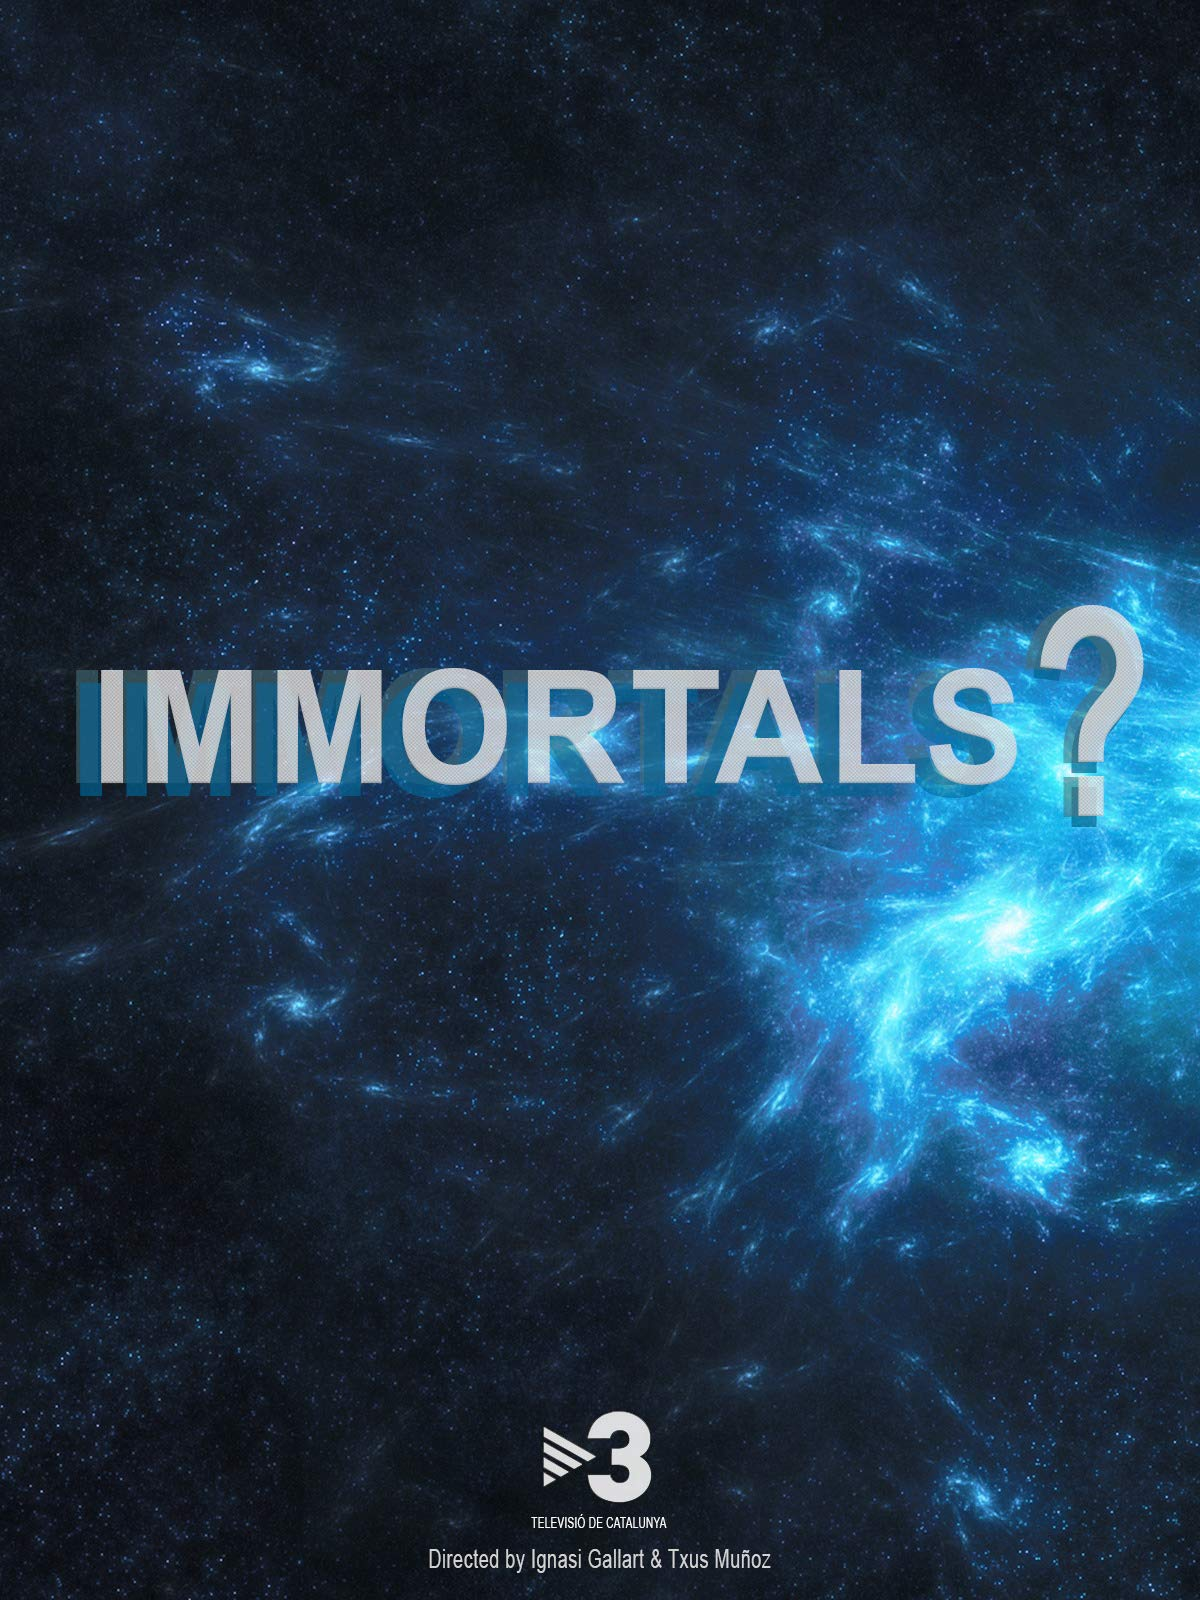 Watch Immortals ? on Amazon Prime Instant Video UK